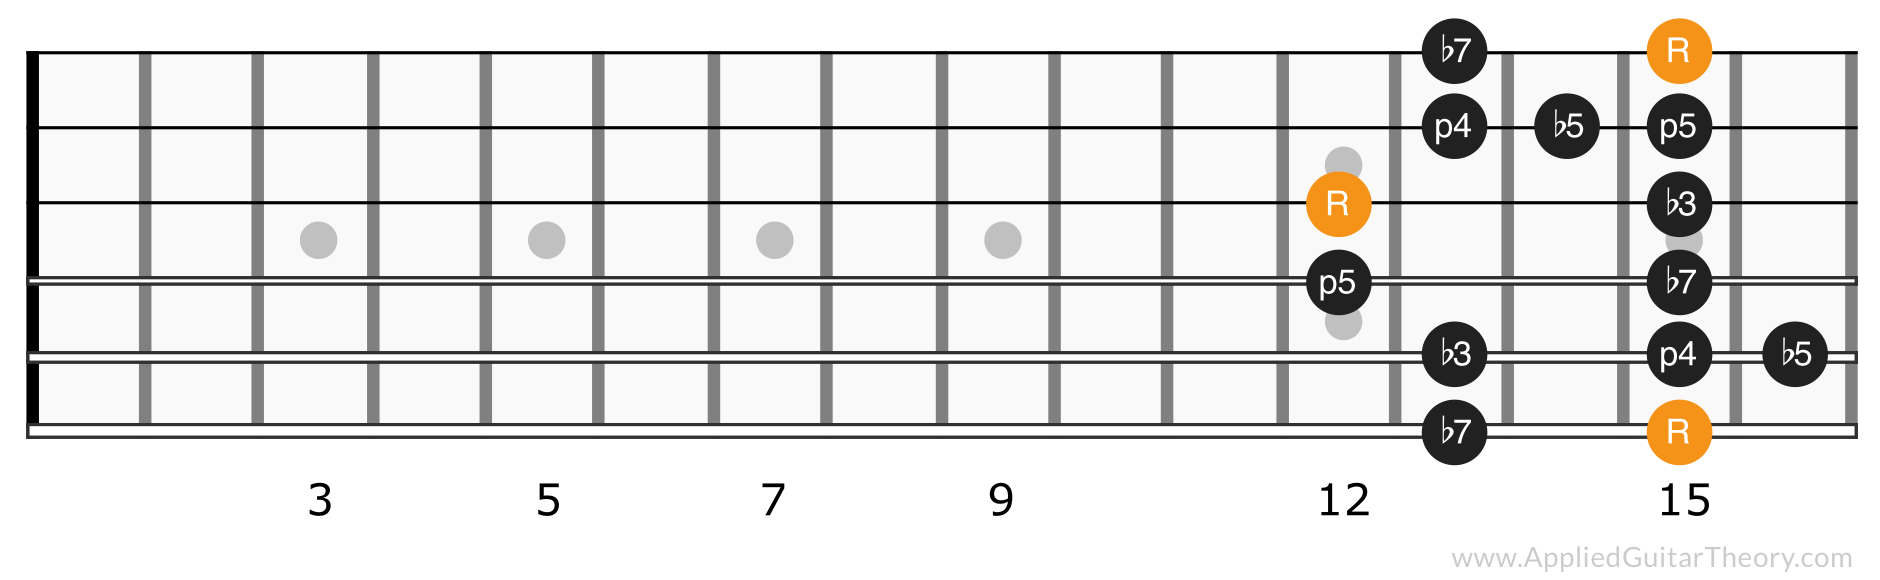 Minor blues scale position 5